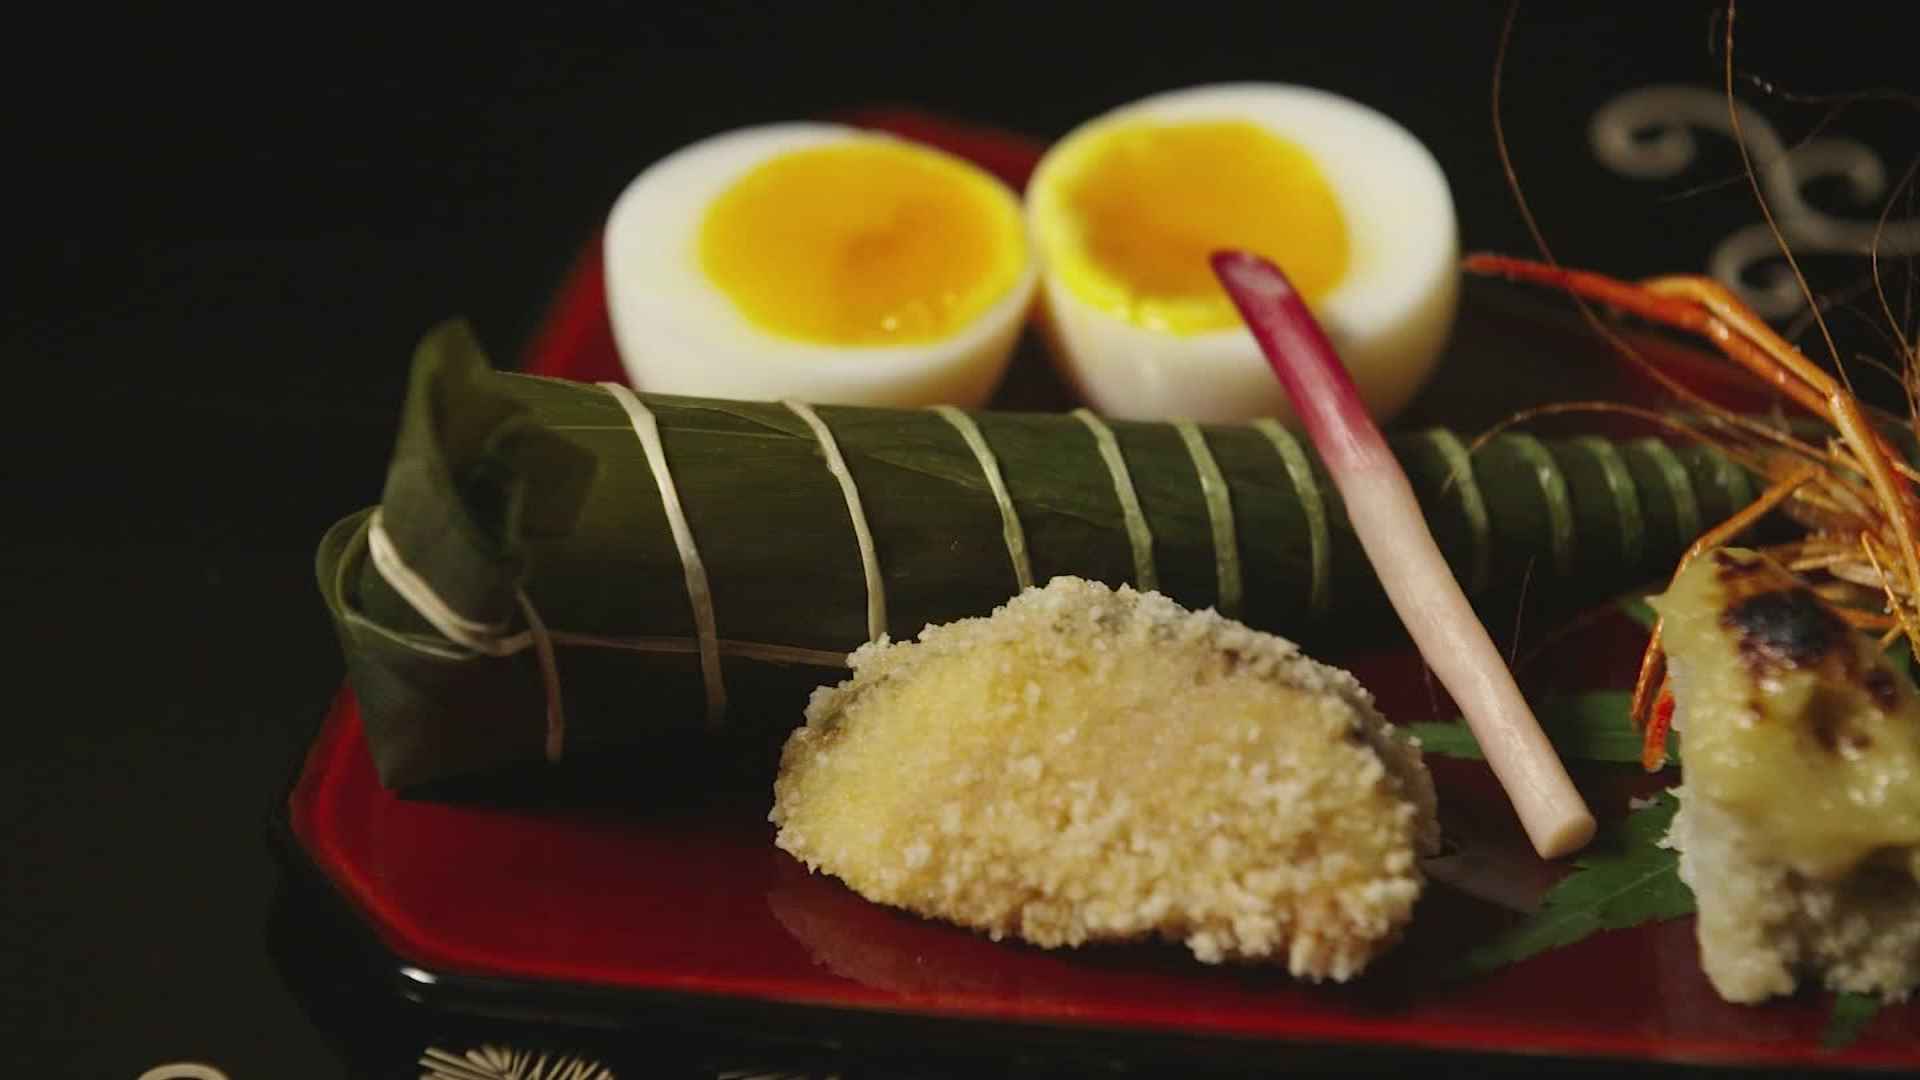 japanese culture cuisine food fare culinary collection